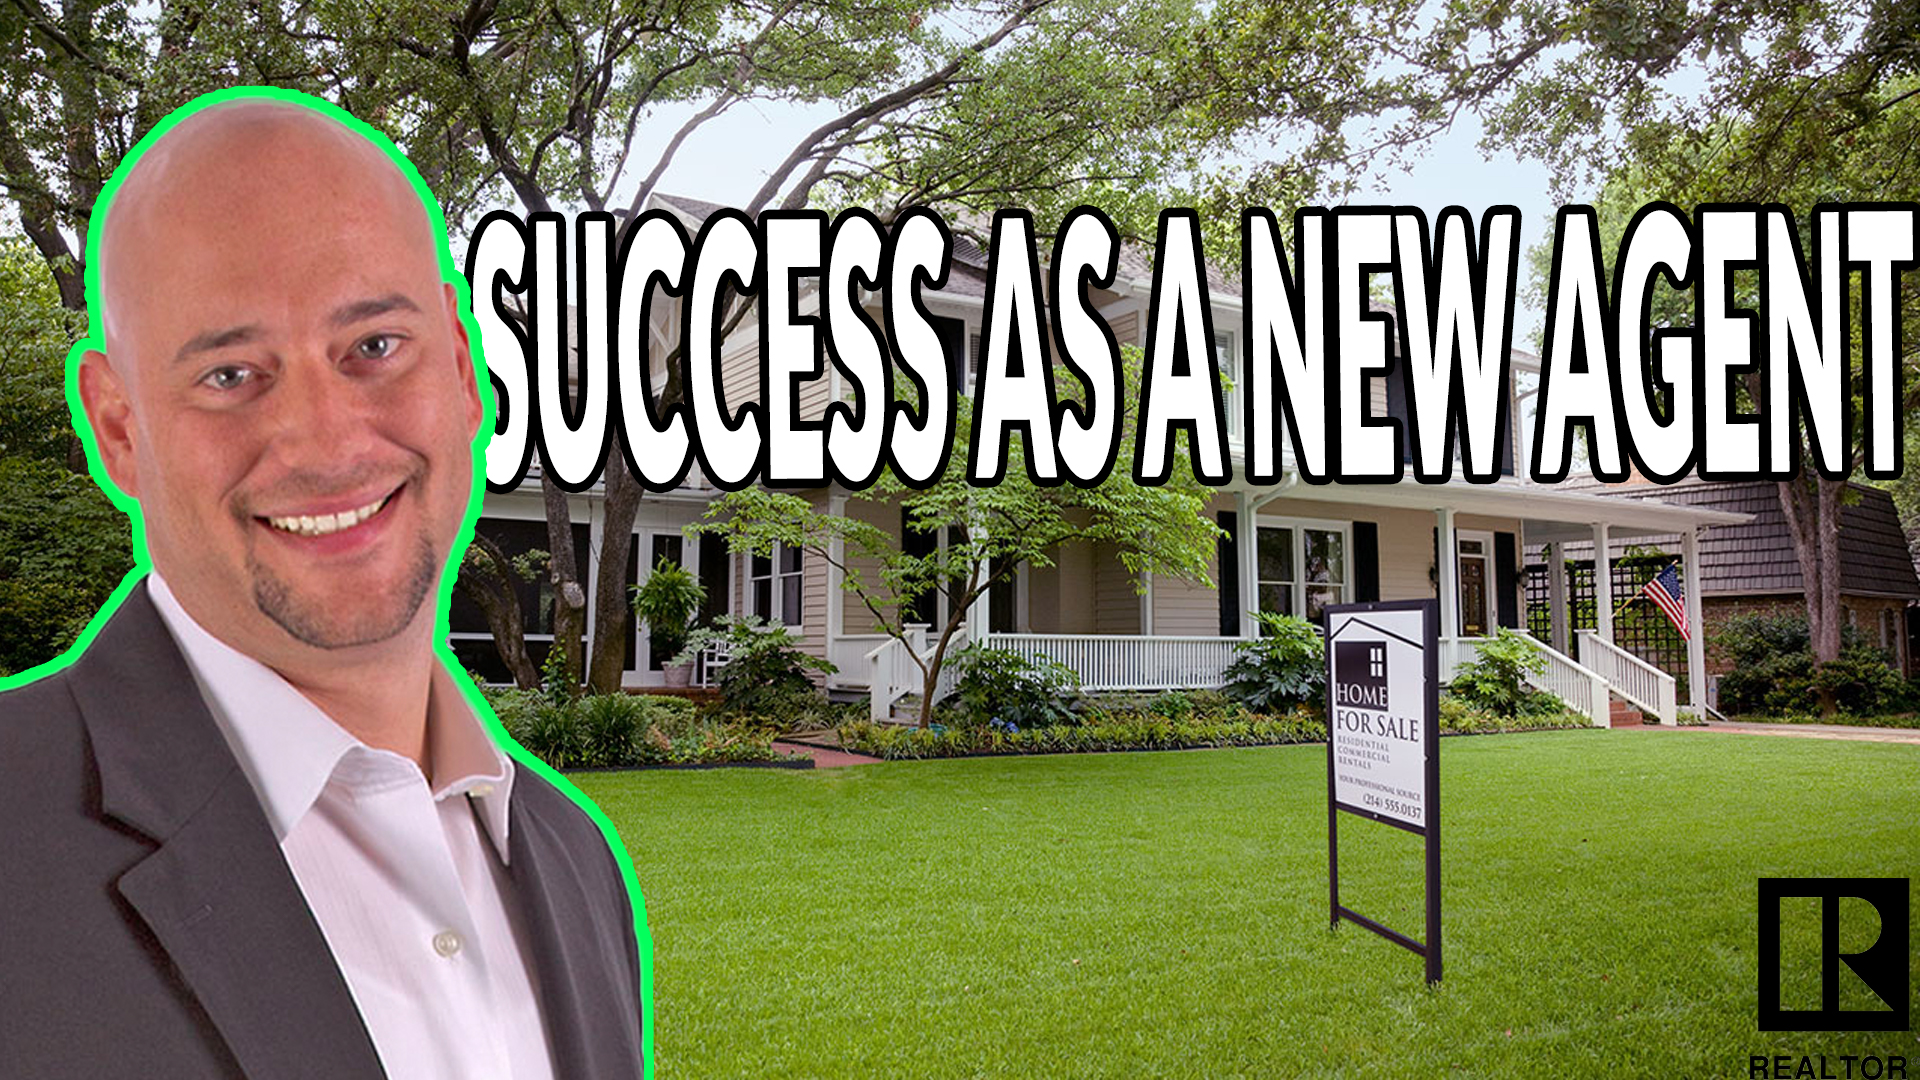 HOW TO FIND SUCCESS AS A NEW AGENT | AREN 117